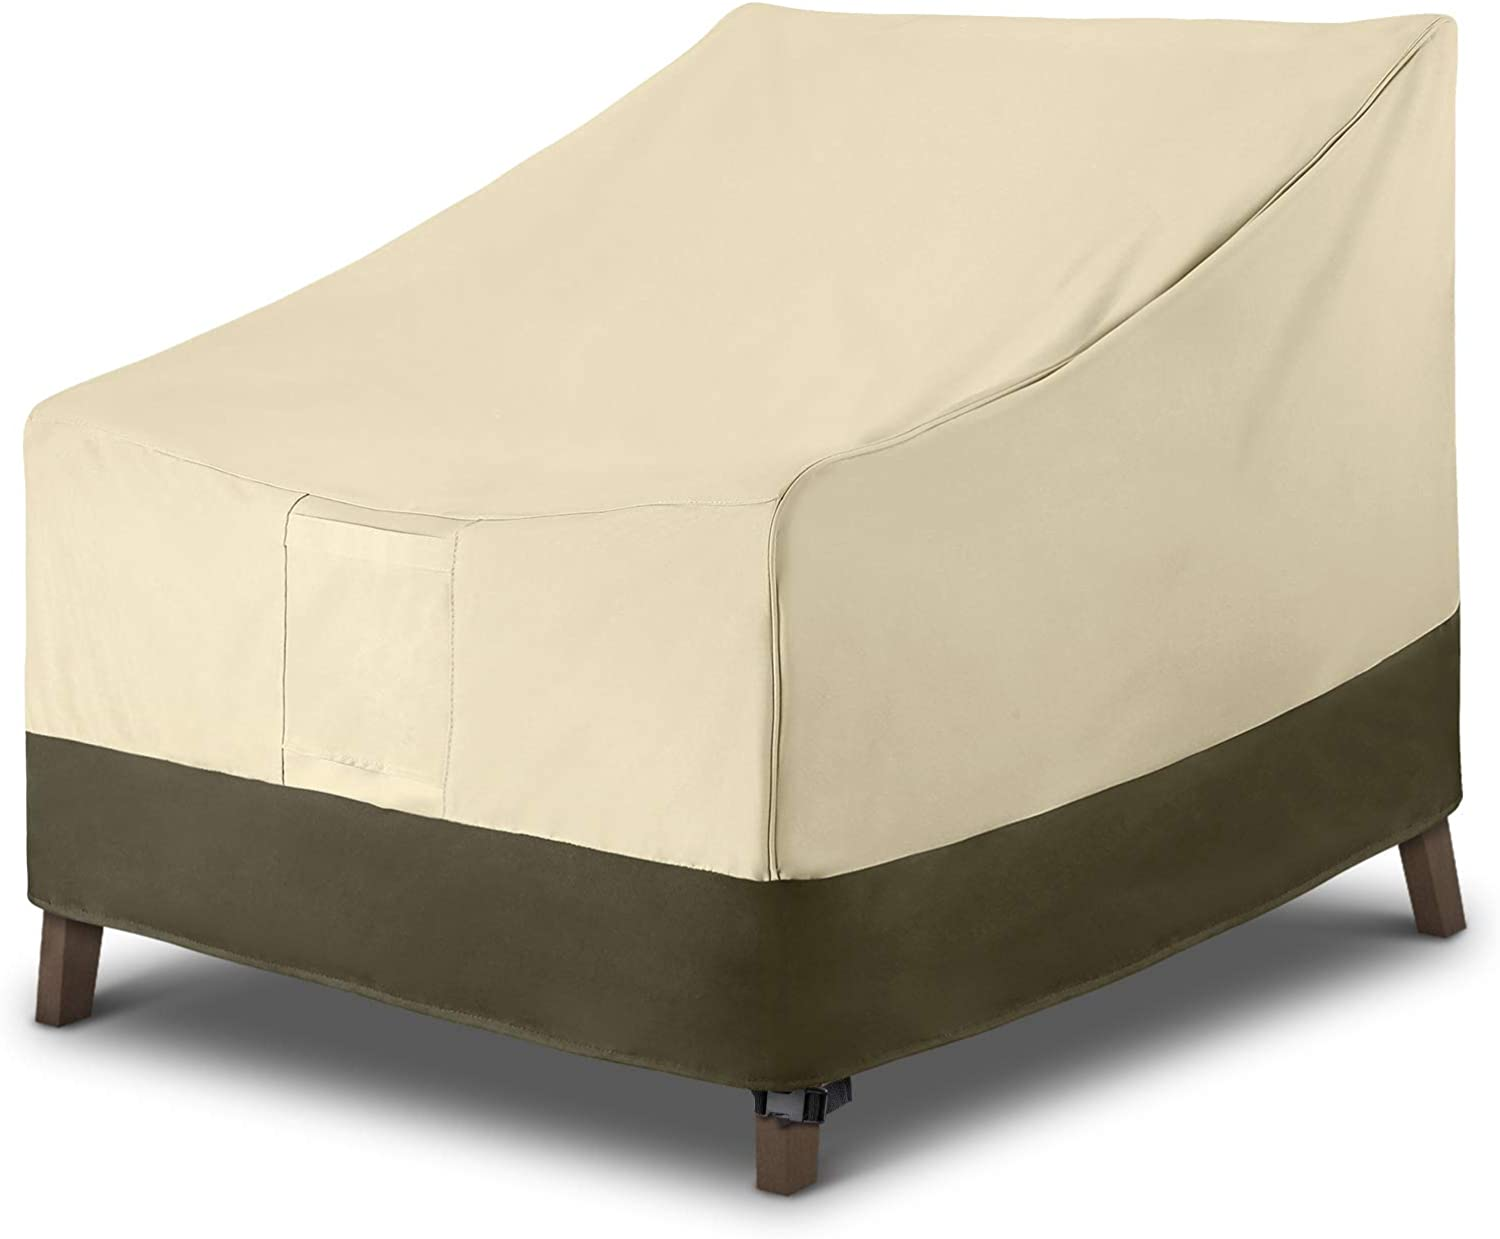 Albuquerque Mall SunPatio 100% Waterproof Los Angeles Mall Patio Chair Cover Covers Outdoor